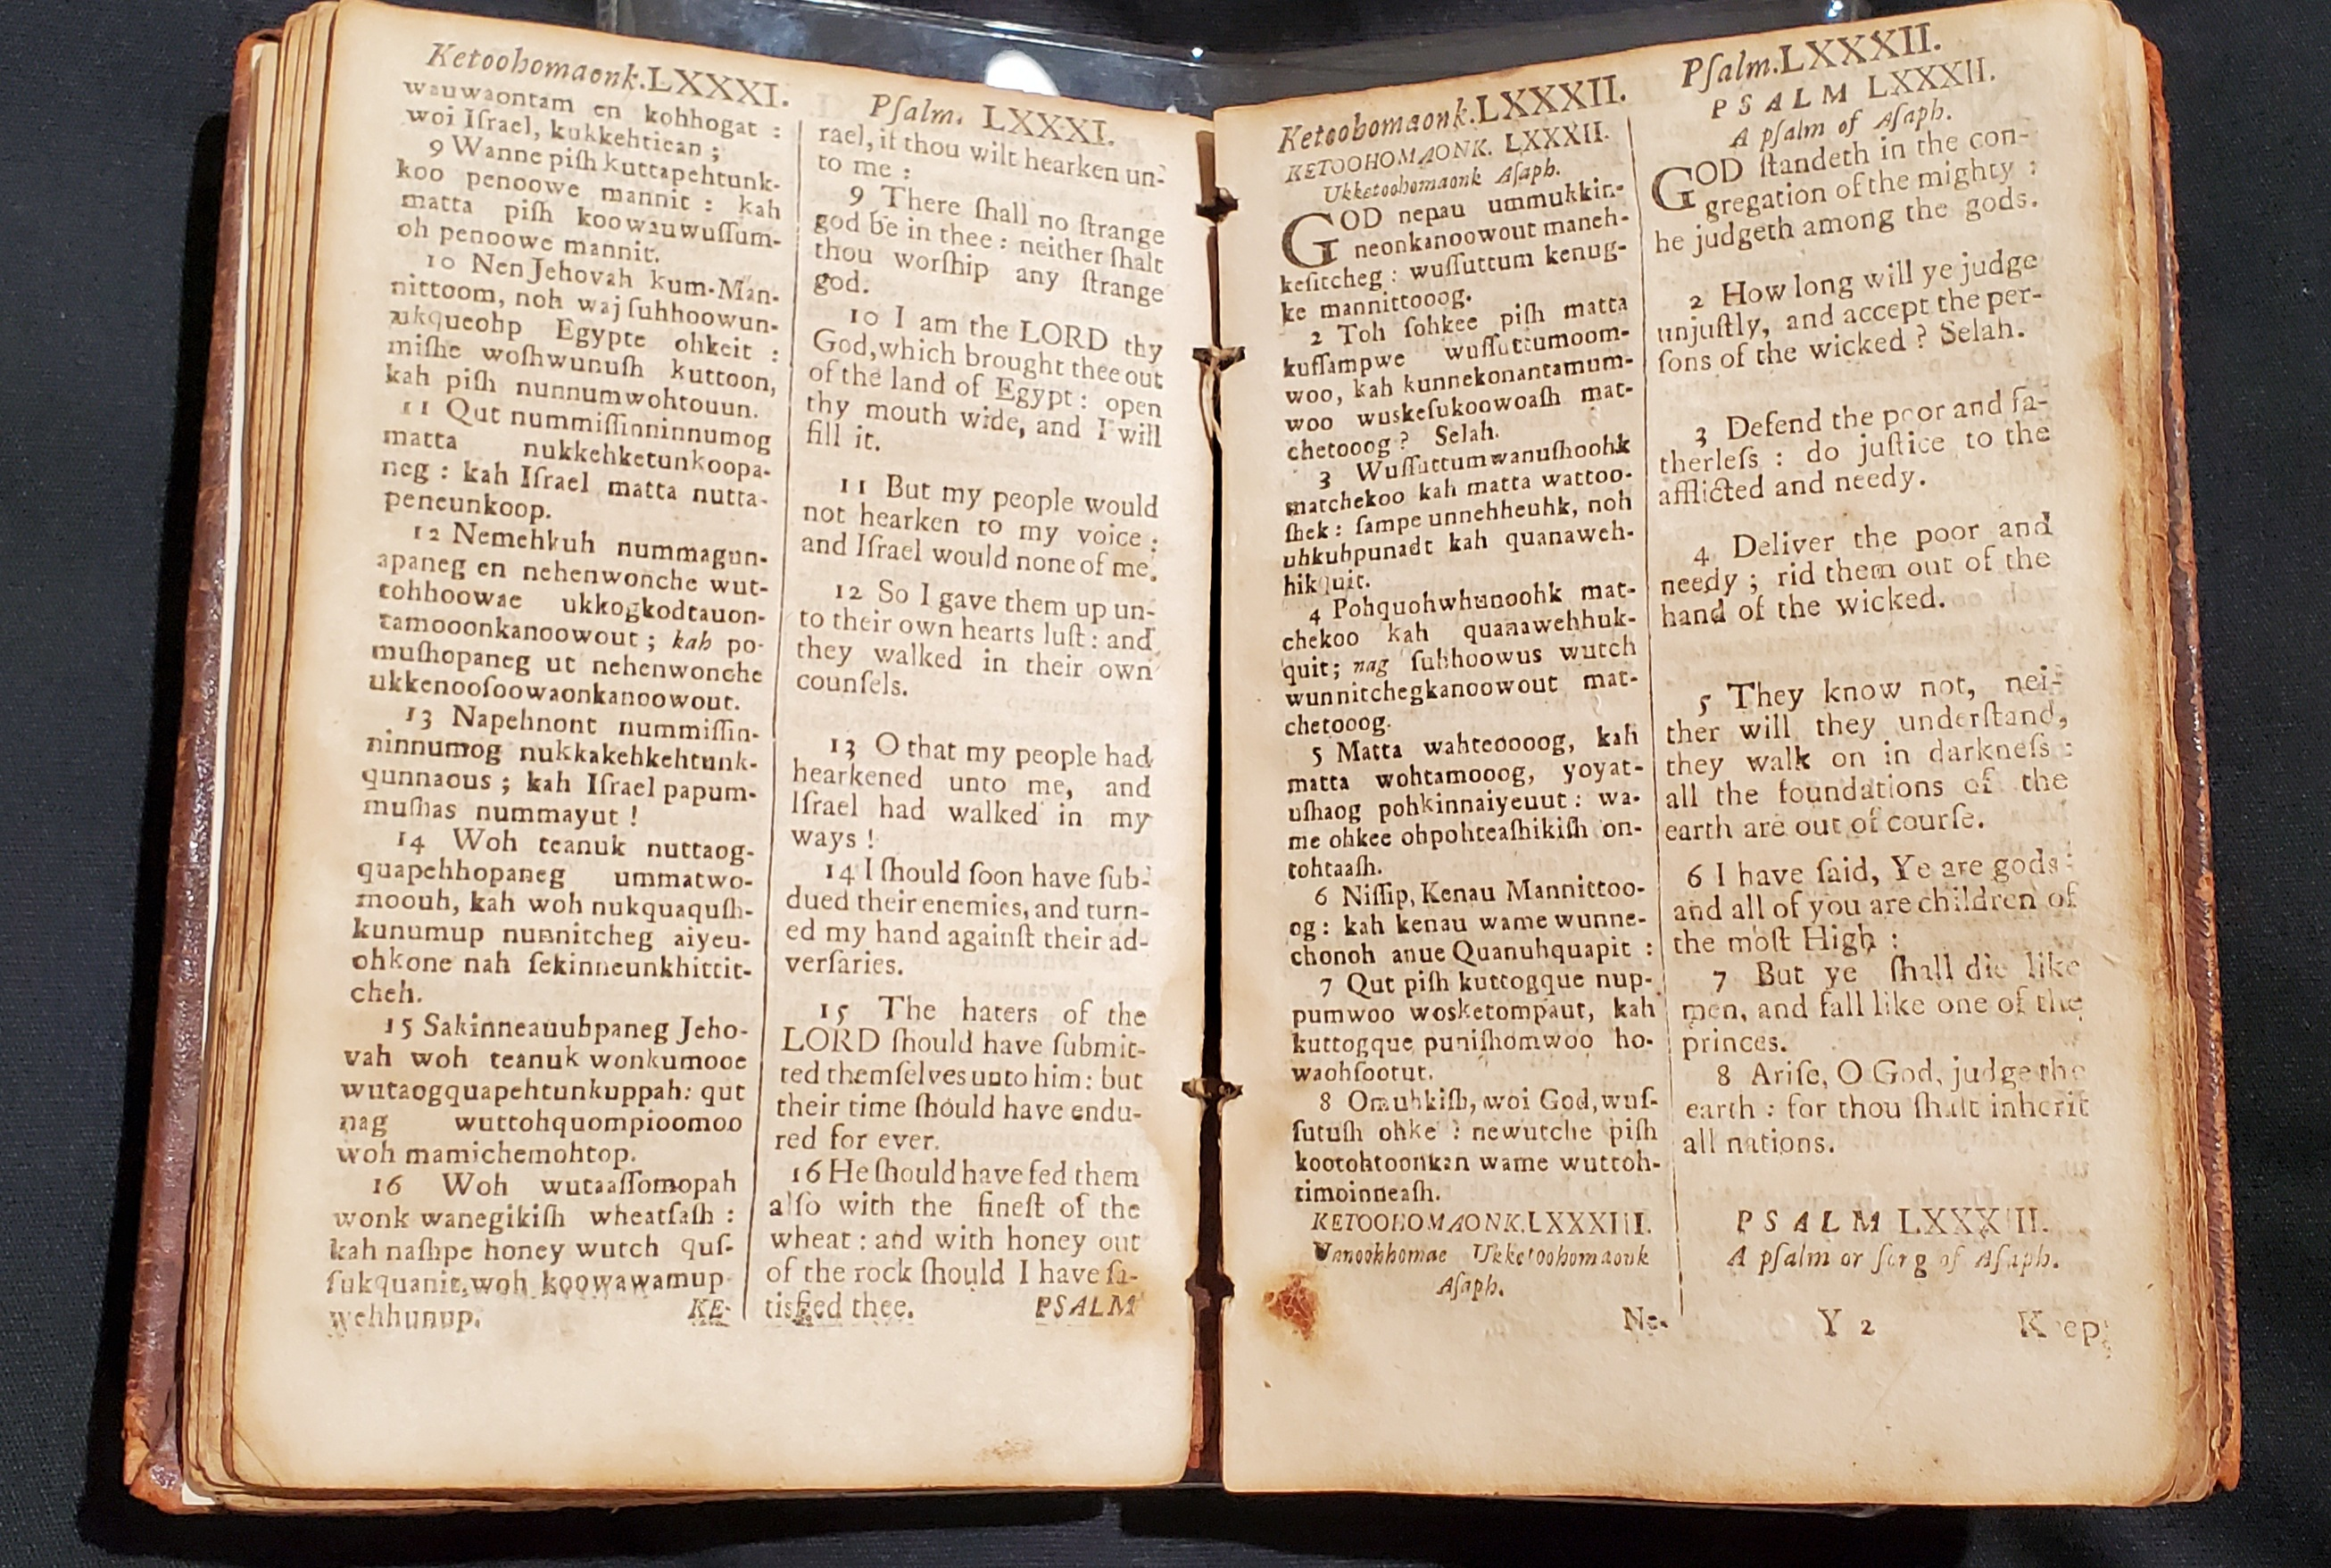 Example pages of the Psalms in Algonquian and English. Each page is split in two with Algonquian on the left and English on the right.